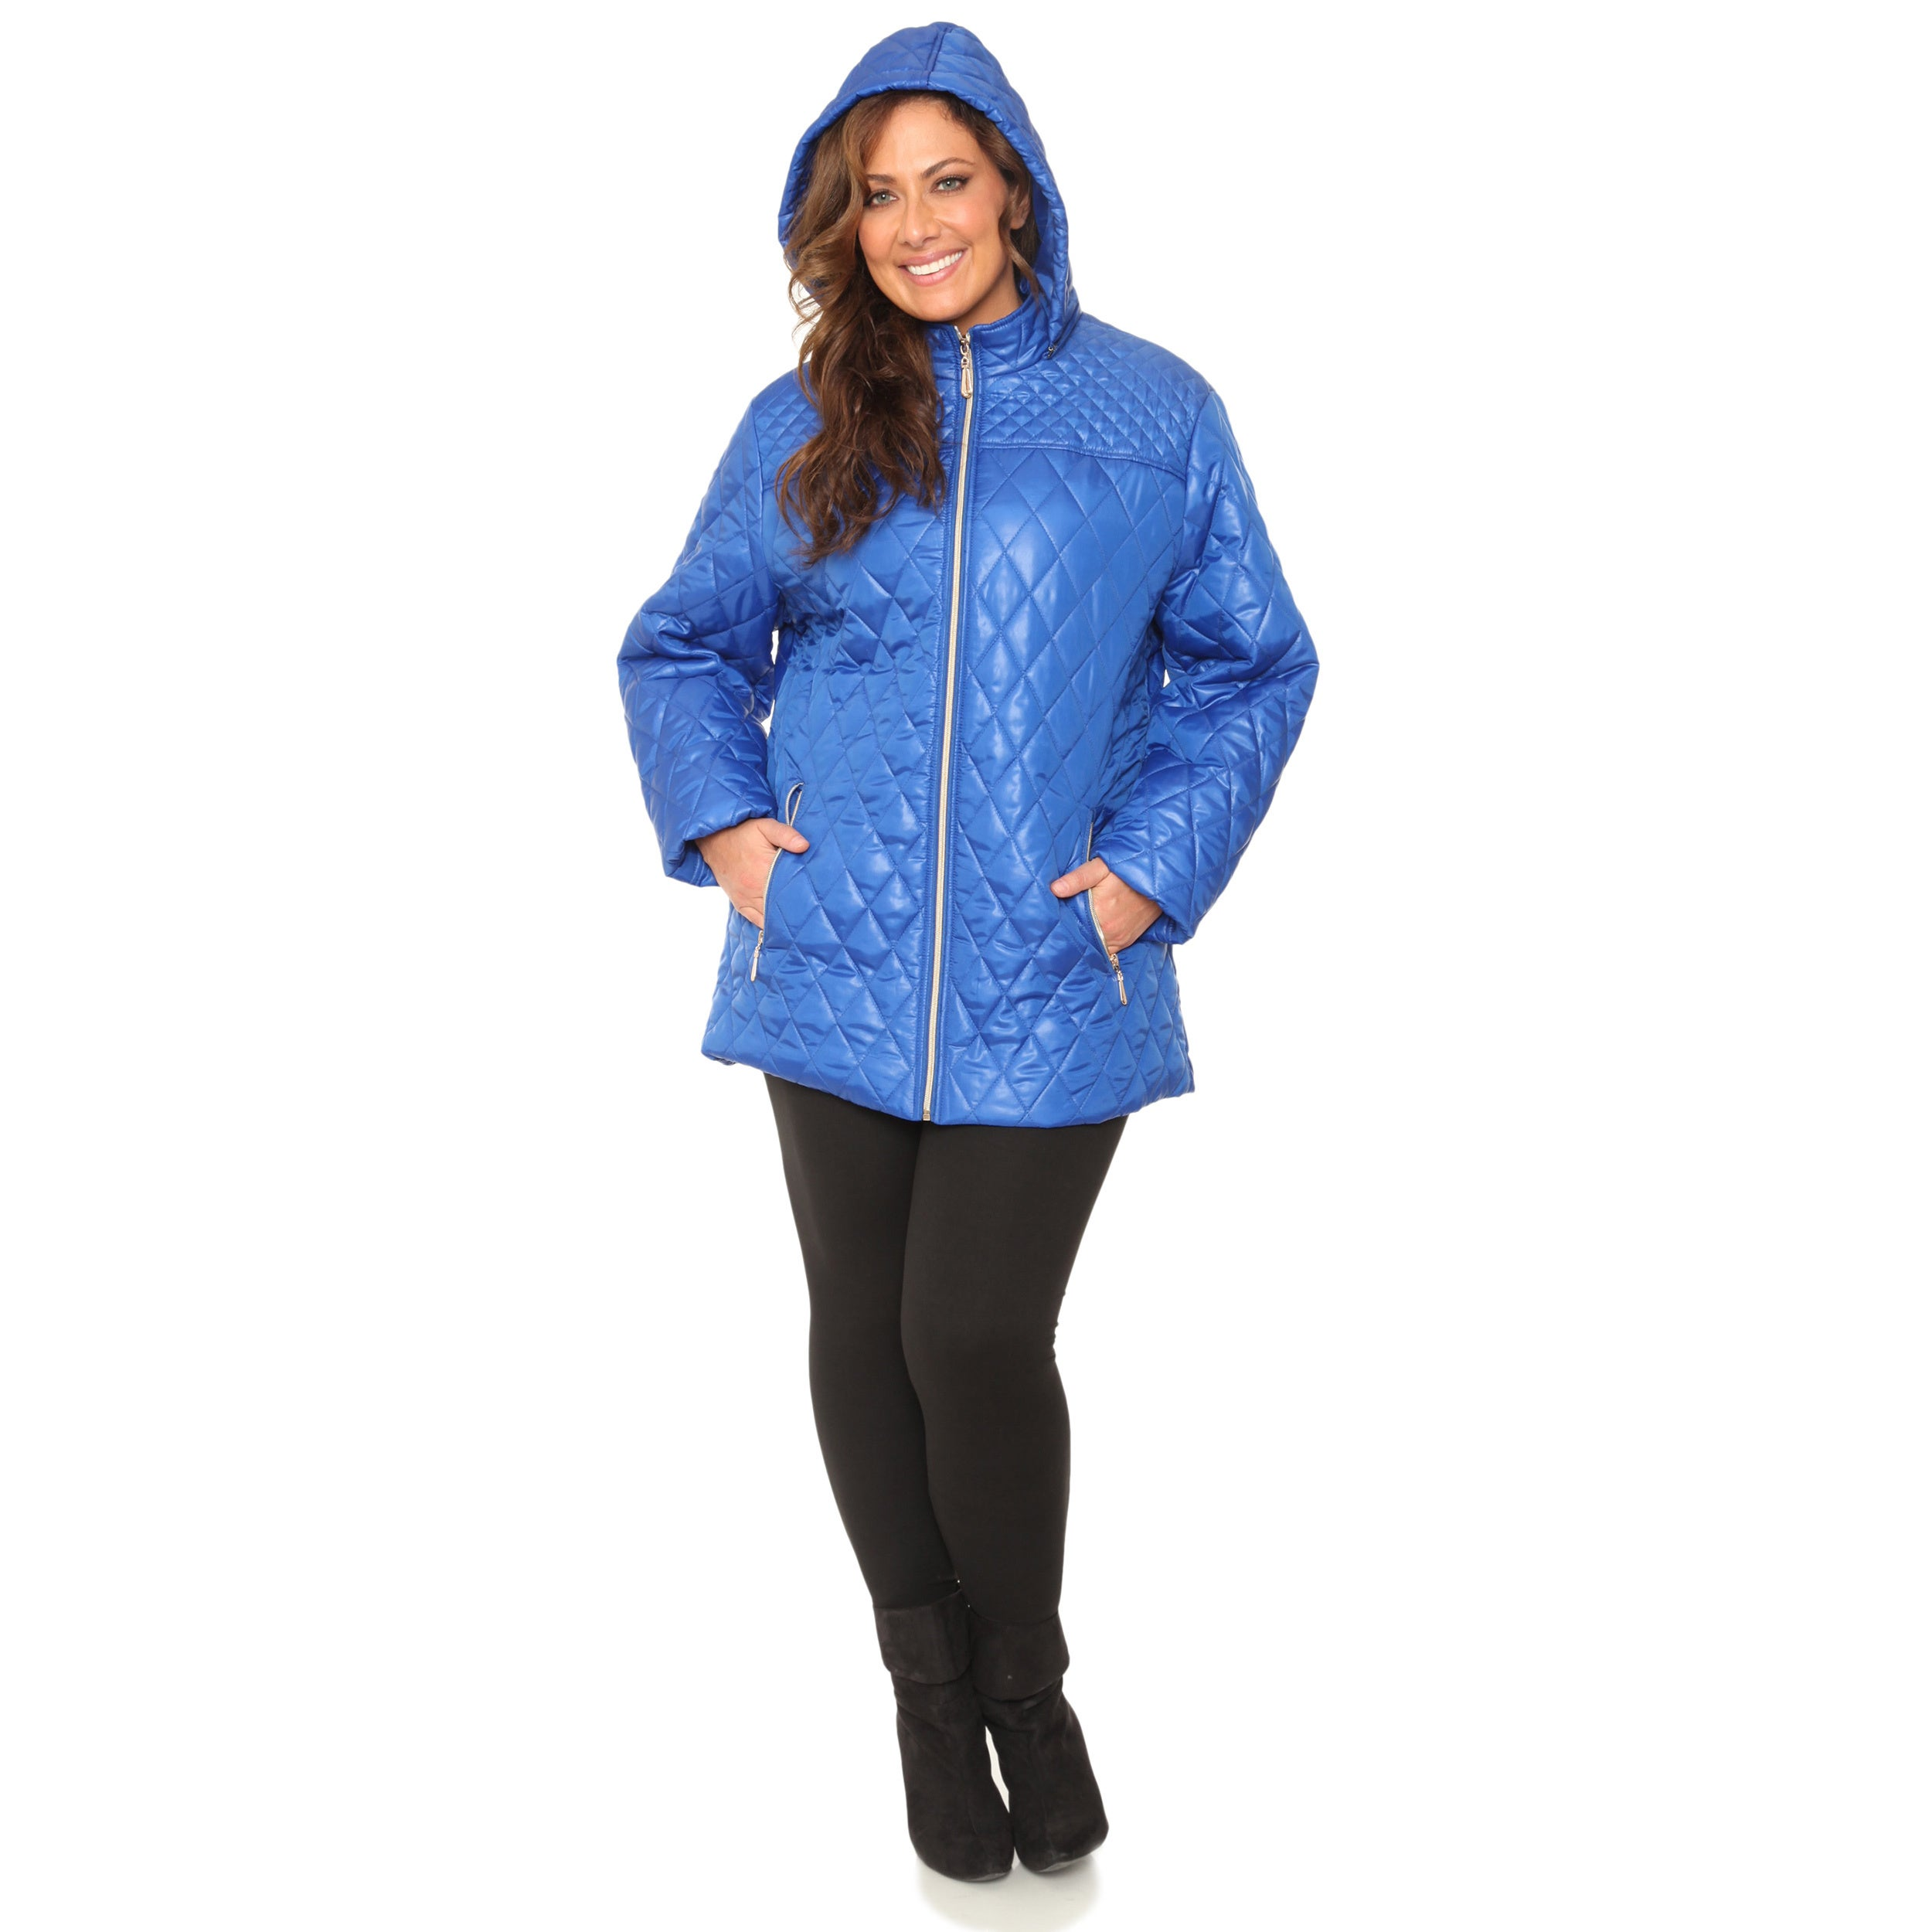 c5721a7aac0 Shop White Mark Women s Plus Size Puffer Coat - On Sale - Free Shipping On  Orders Over  45 - Overstock - 10698631